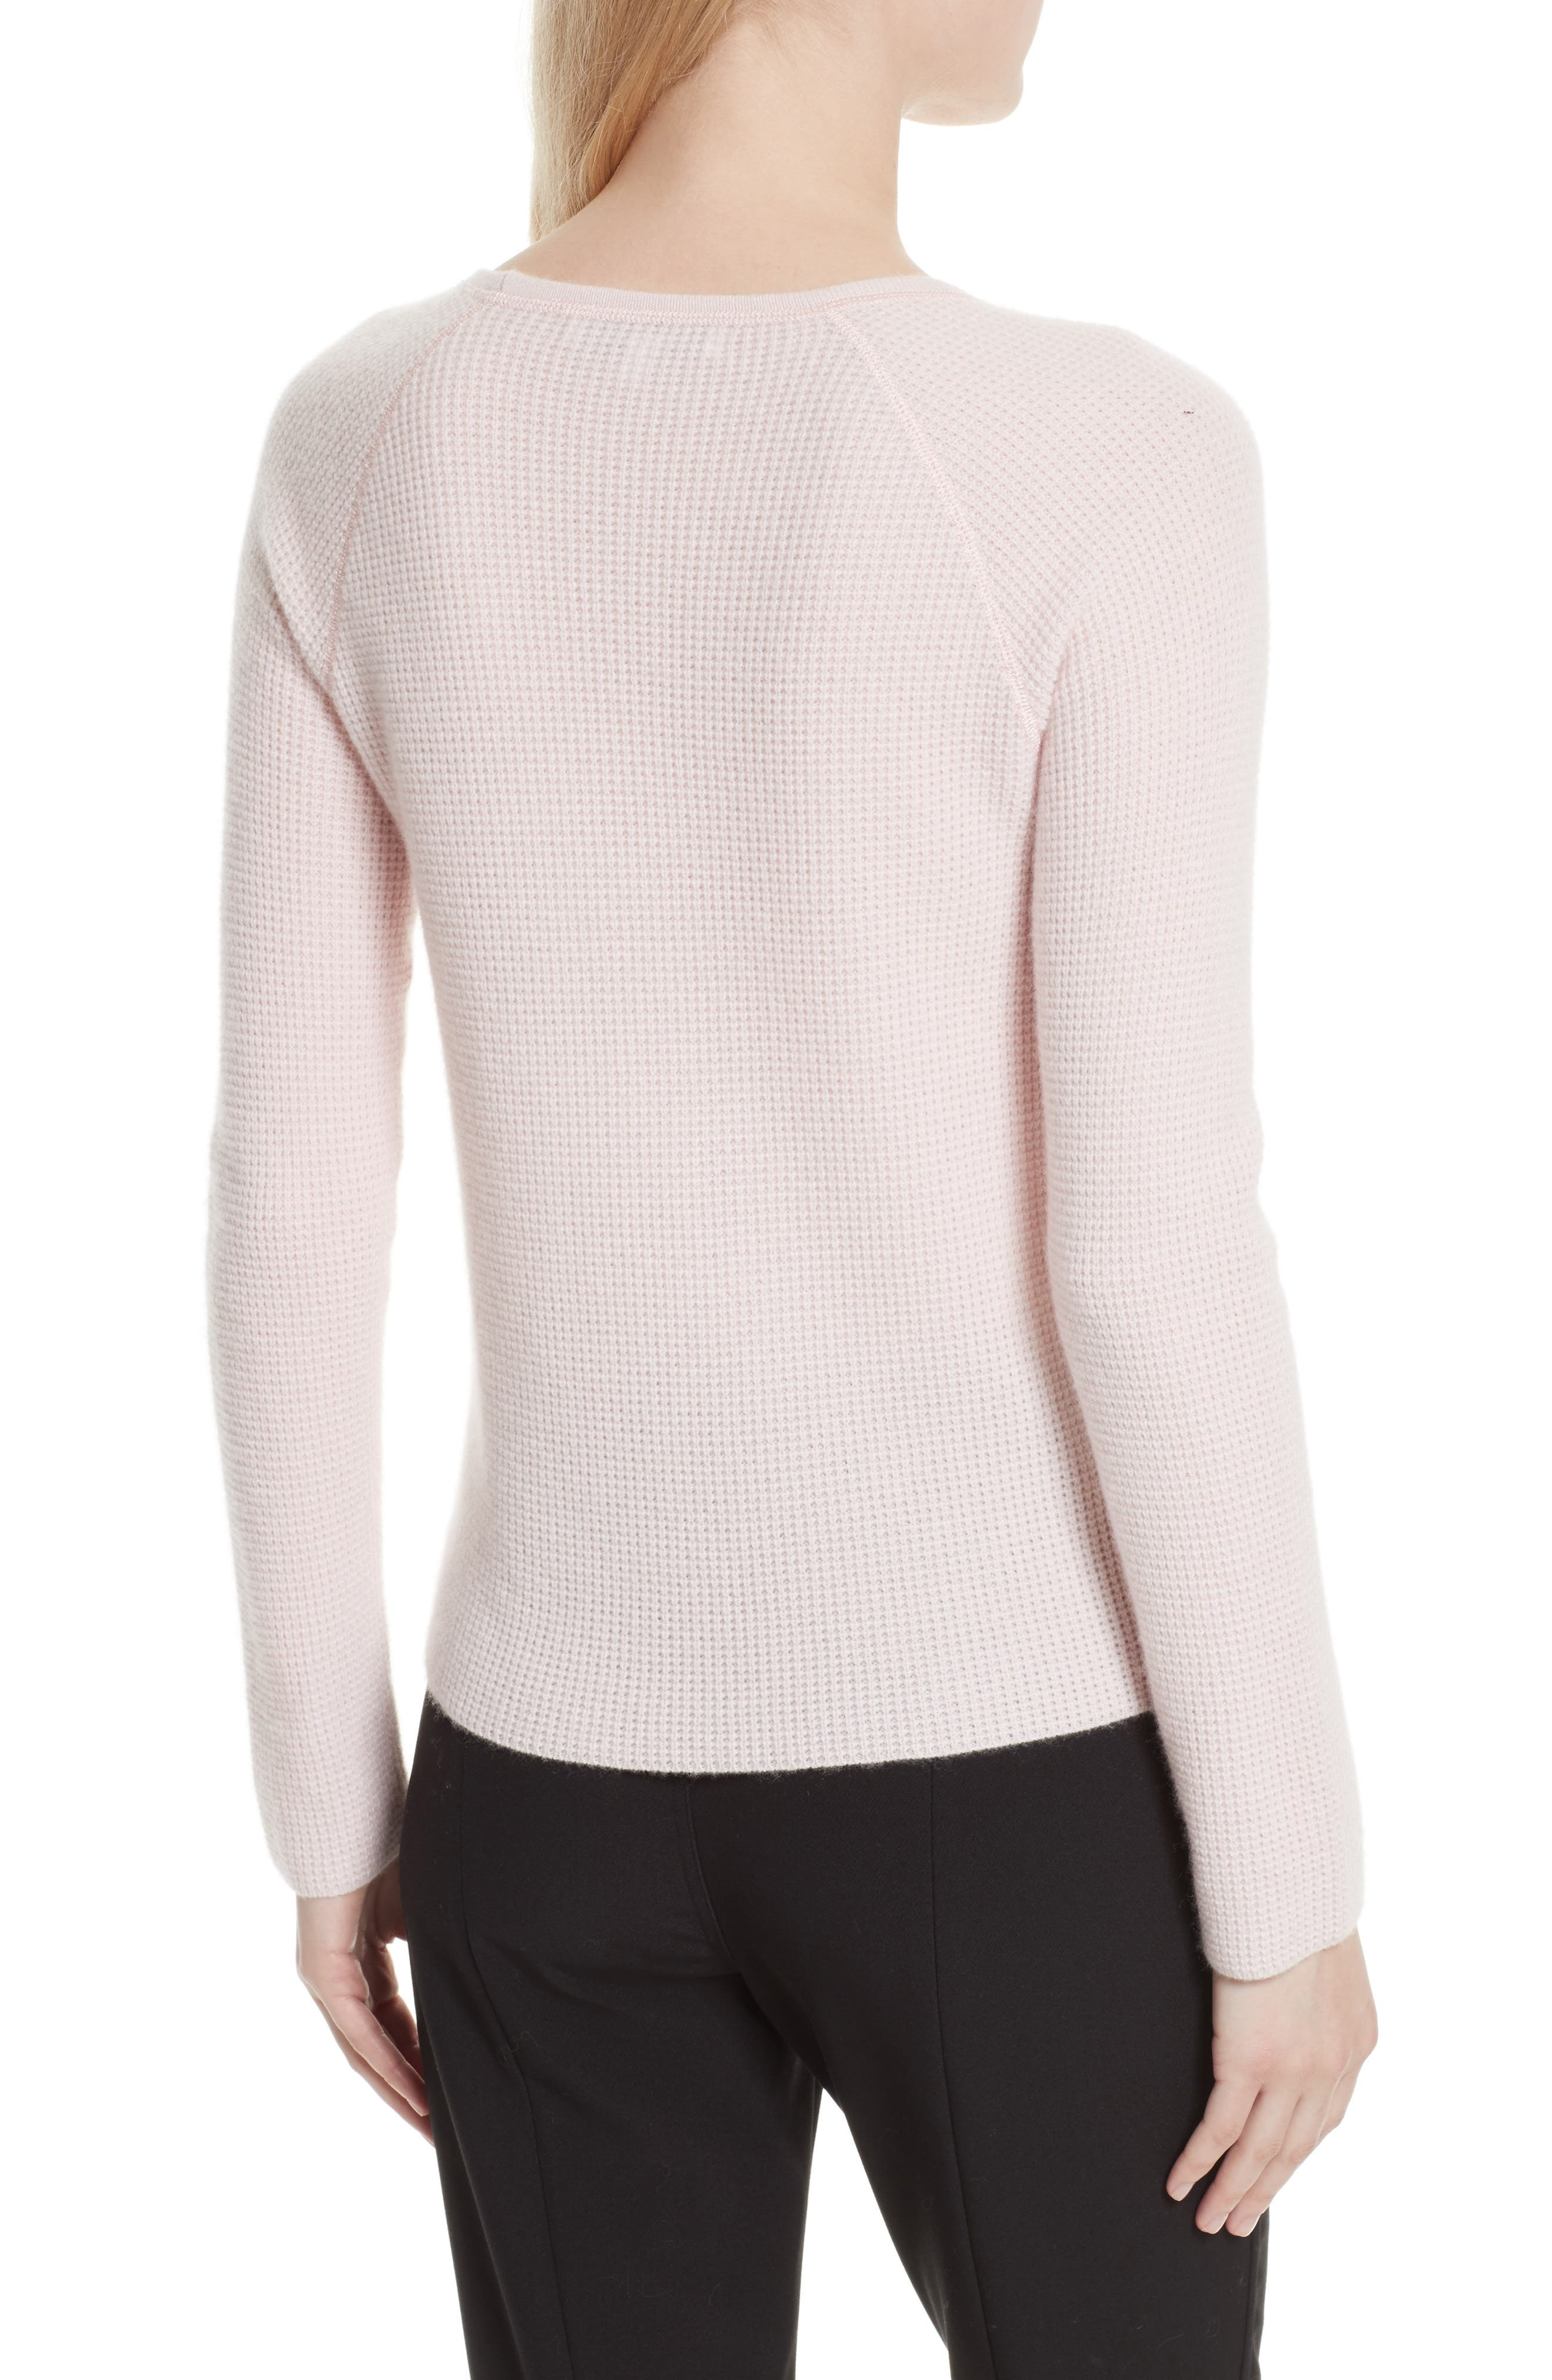 Karina Waffle Knit Cashmere Sweater,                             Alternate thumbnail 2, color,                             684